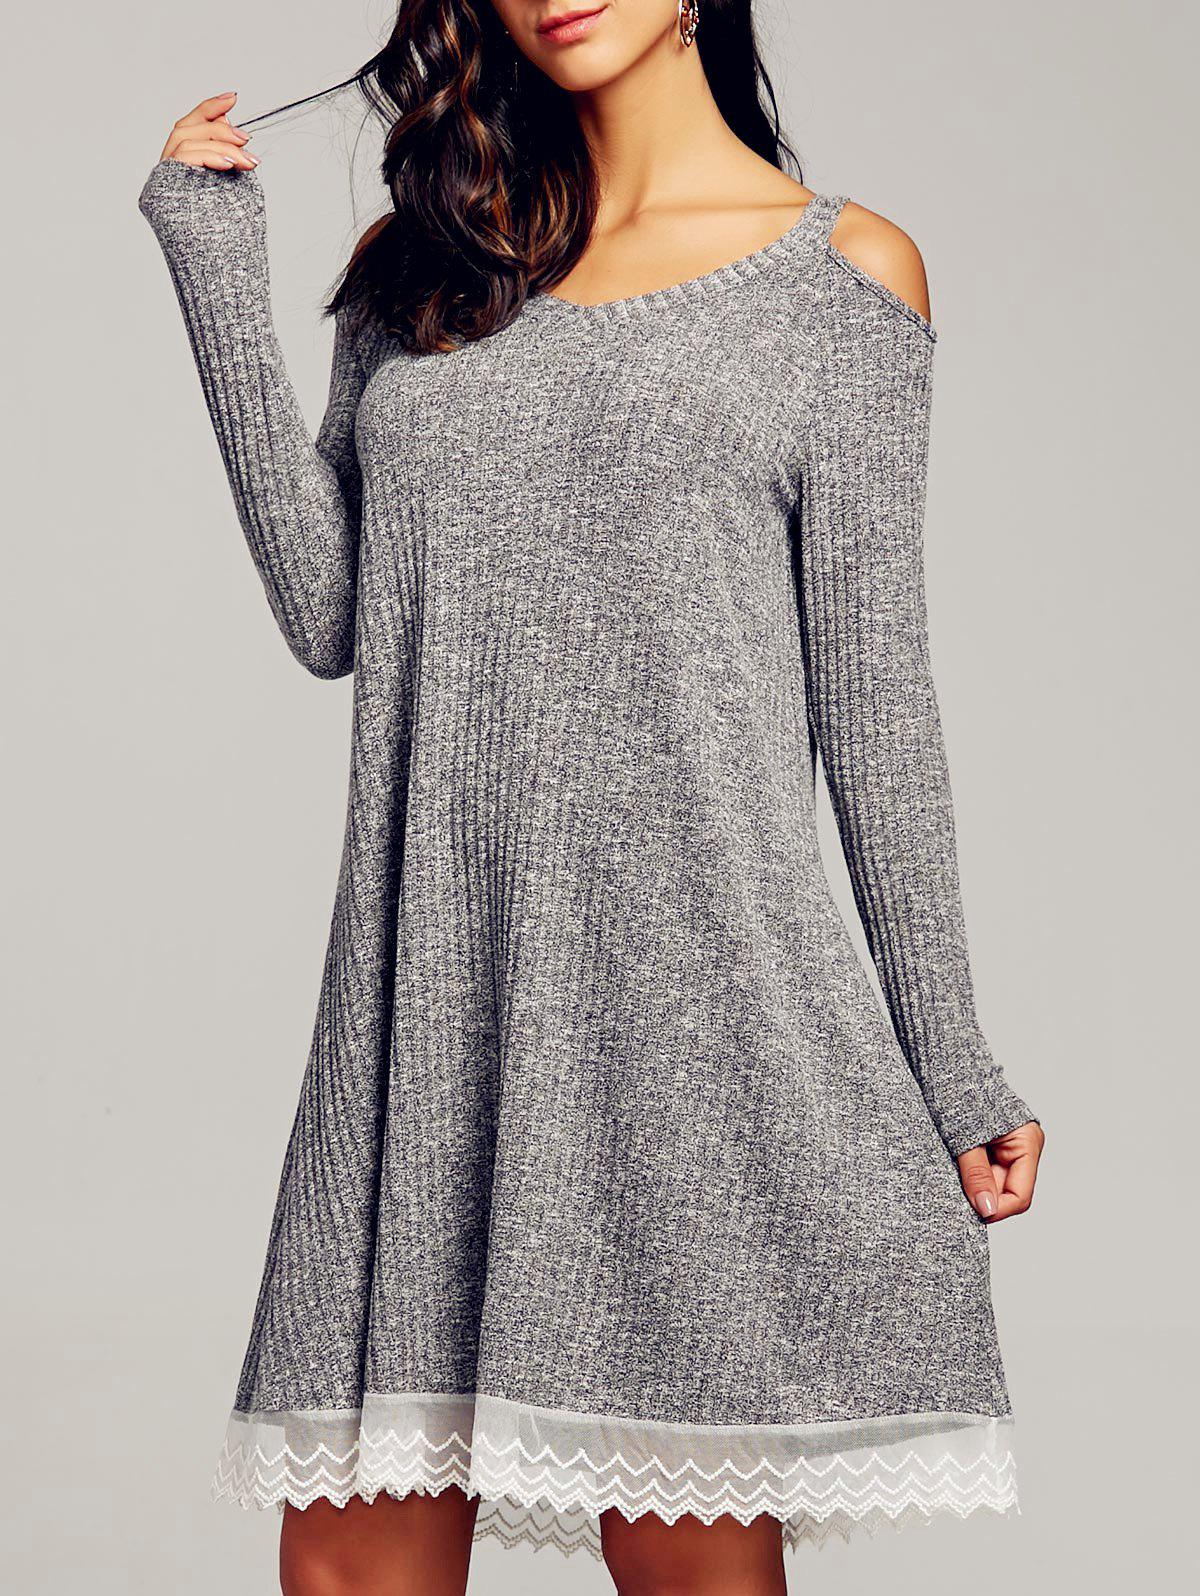 Cold Shoulder Swing Dress - GRAY 2XL